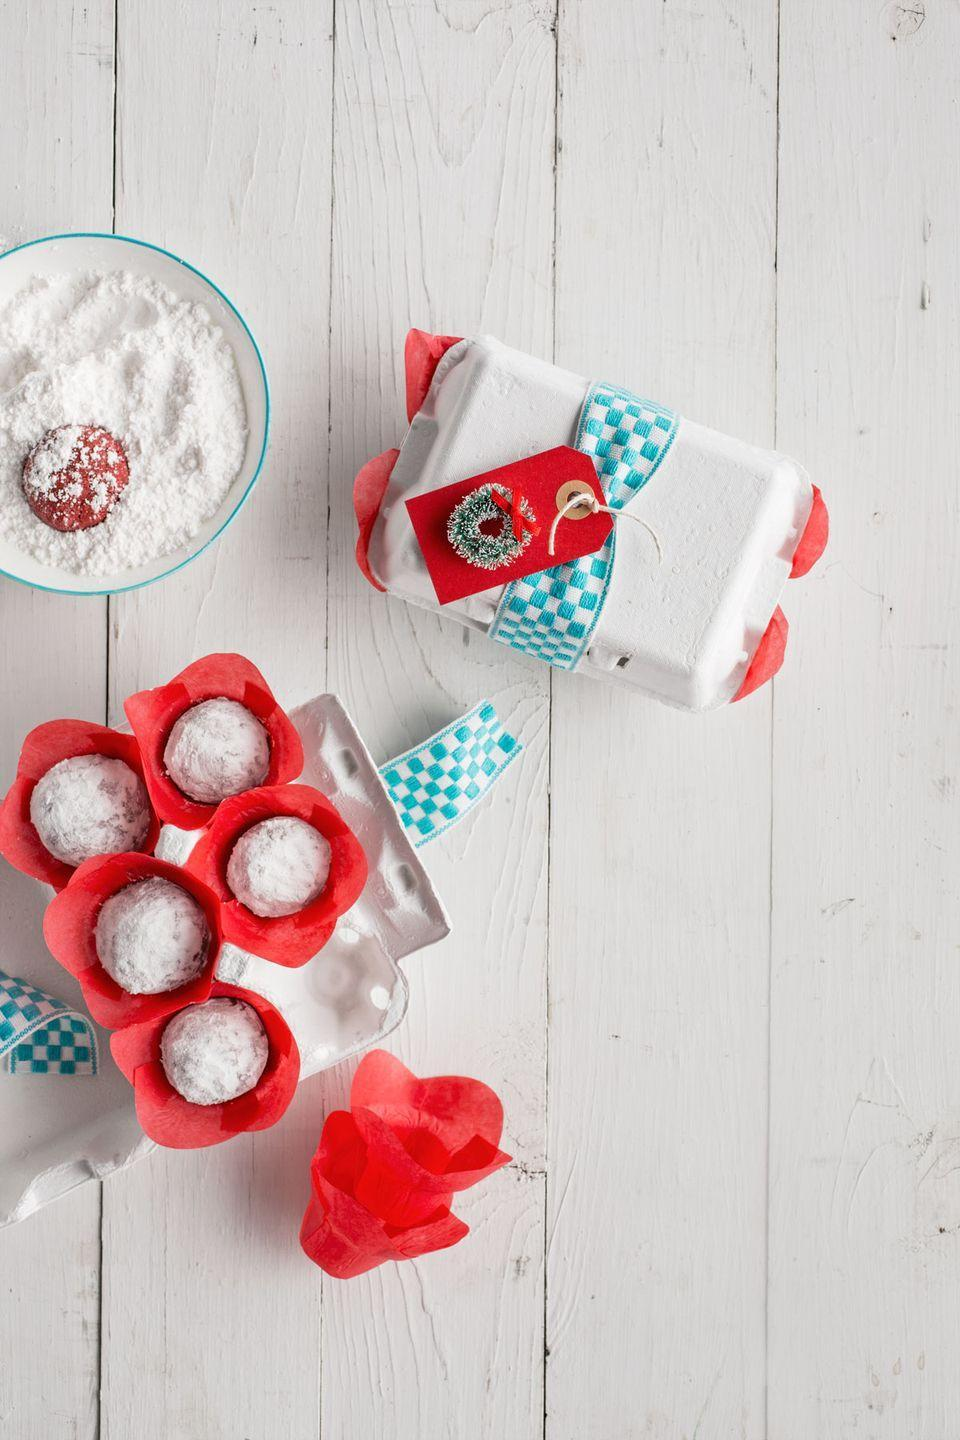 """<p>After whipping up these snowball treats, fill a six-egg carton with mini lotus cupcake liners and add cookies. Tie it up with a plain tag adorned with a bottle brush wreath.</p><p><strong><a href=""""https://www.countryliving.com/food-drinks/recipes/a36895/red-velvet-snowballs/"""" rel=""""nofollow noopener"""" target=""""_blank"""" data-ylk=""""slk:Get the recipe"""" class=""""link rapid-noclick-resp"""">Get the recipe</a>.</strong></p><p><a class=""""link rapid-noclick-resp"""" href=""""https://go.redirectingat.com?id=74968X1596630&url=https%3A%2F%2Fwww.papermart.com%2Flotus-cupcake-baking-cups%2Fid%3D36817&sref=https%3A%2F%2Fwww.countryliving.com%2Ffood-drinks%2Fg647%2Fholiday-cookies-1208%2F"""" rel=""""nofollow noopener"""" target=""""_blank"""" data-ylk=""""slk:SHOP LOTUS CUPCAKE LINERS"""">SHOP LOTUS CUPCAKE LINERS</a><br></p>"""